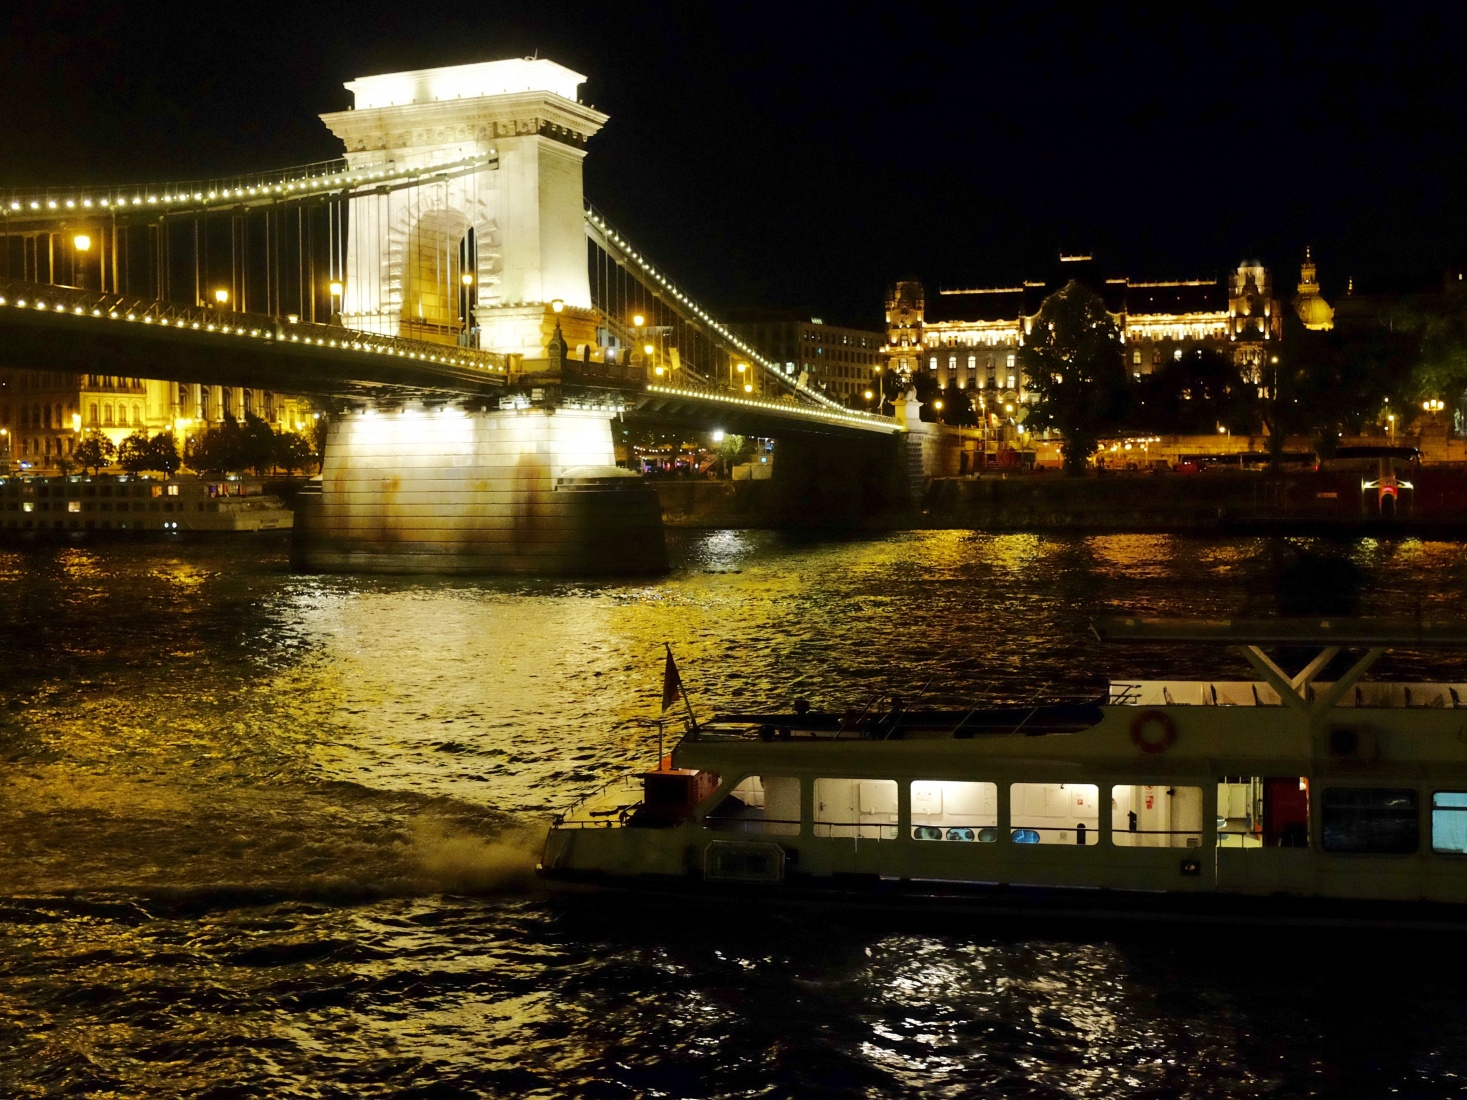 Night cruise along the Danube in Budapest, Hungary.